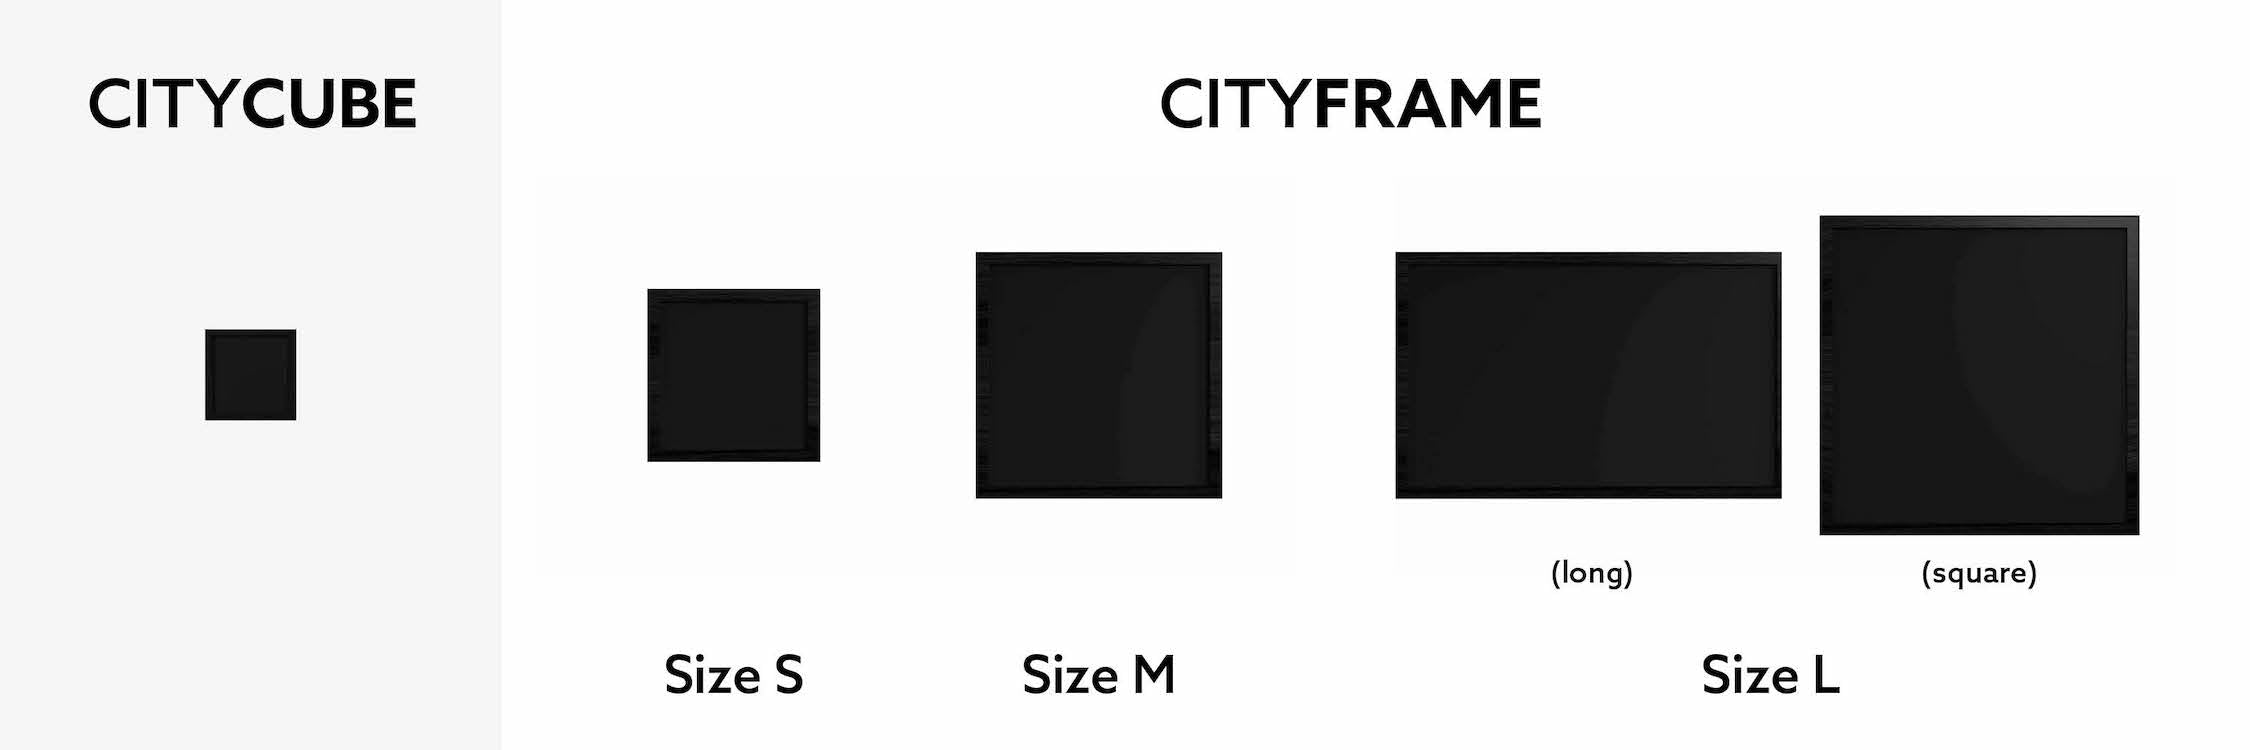 CityCube CityFrame Size Overview